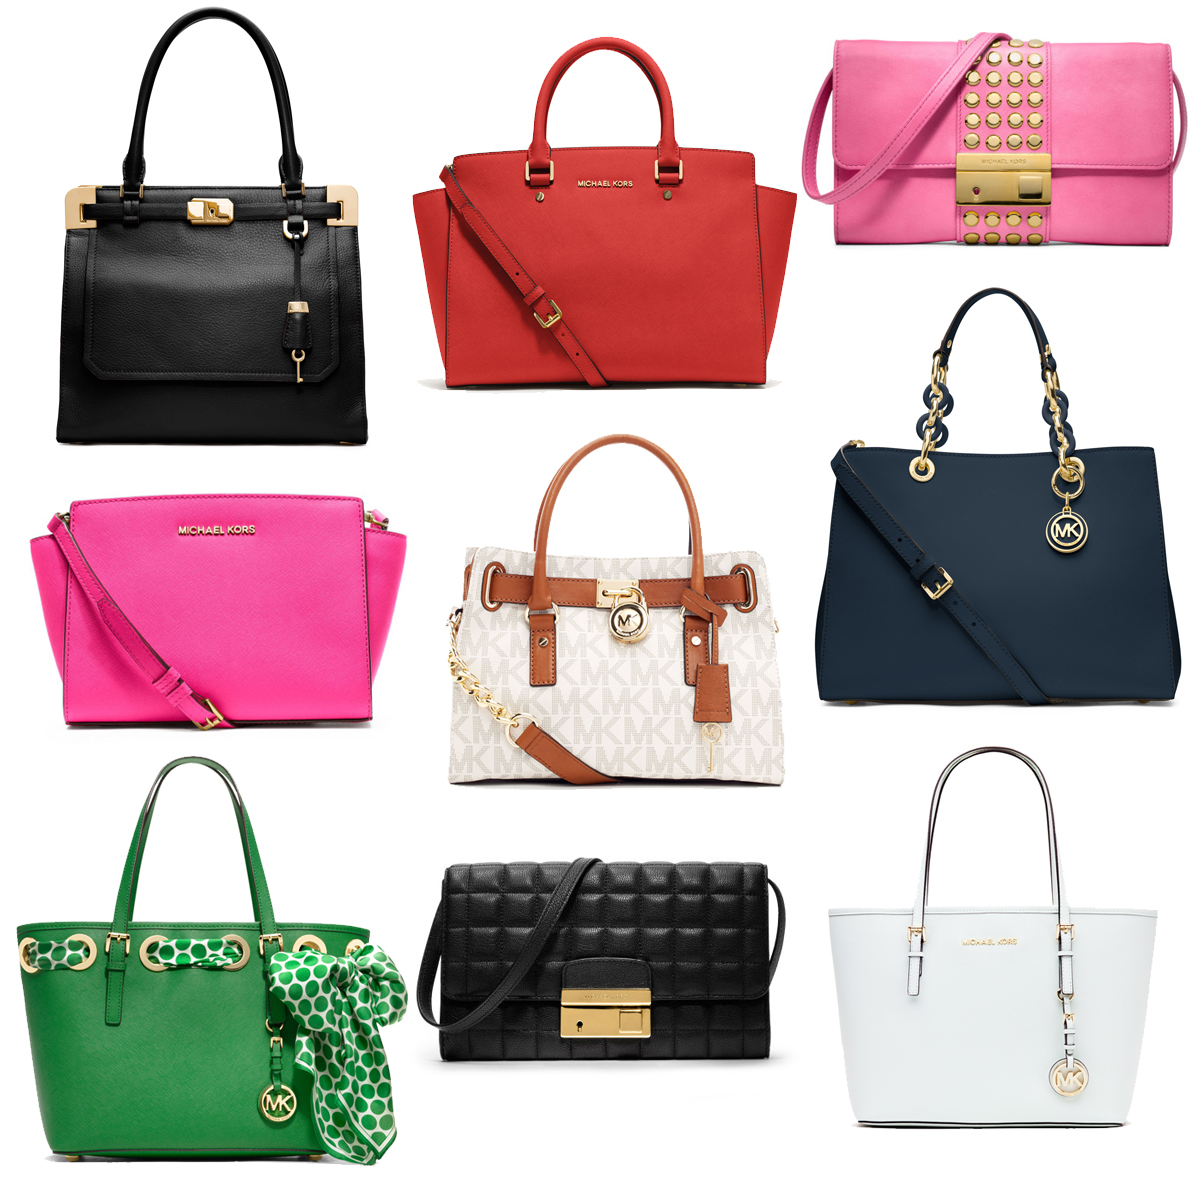 Michael-Kors-Handbags-2014 Shopping: Michael Kors tassen lente/zomer collectie 2014